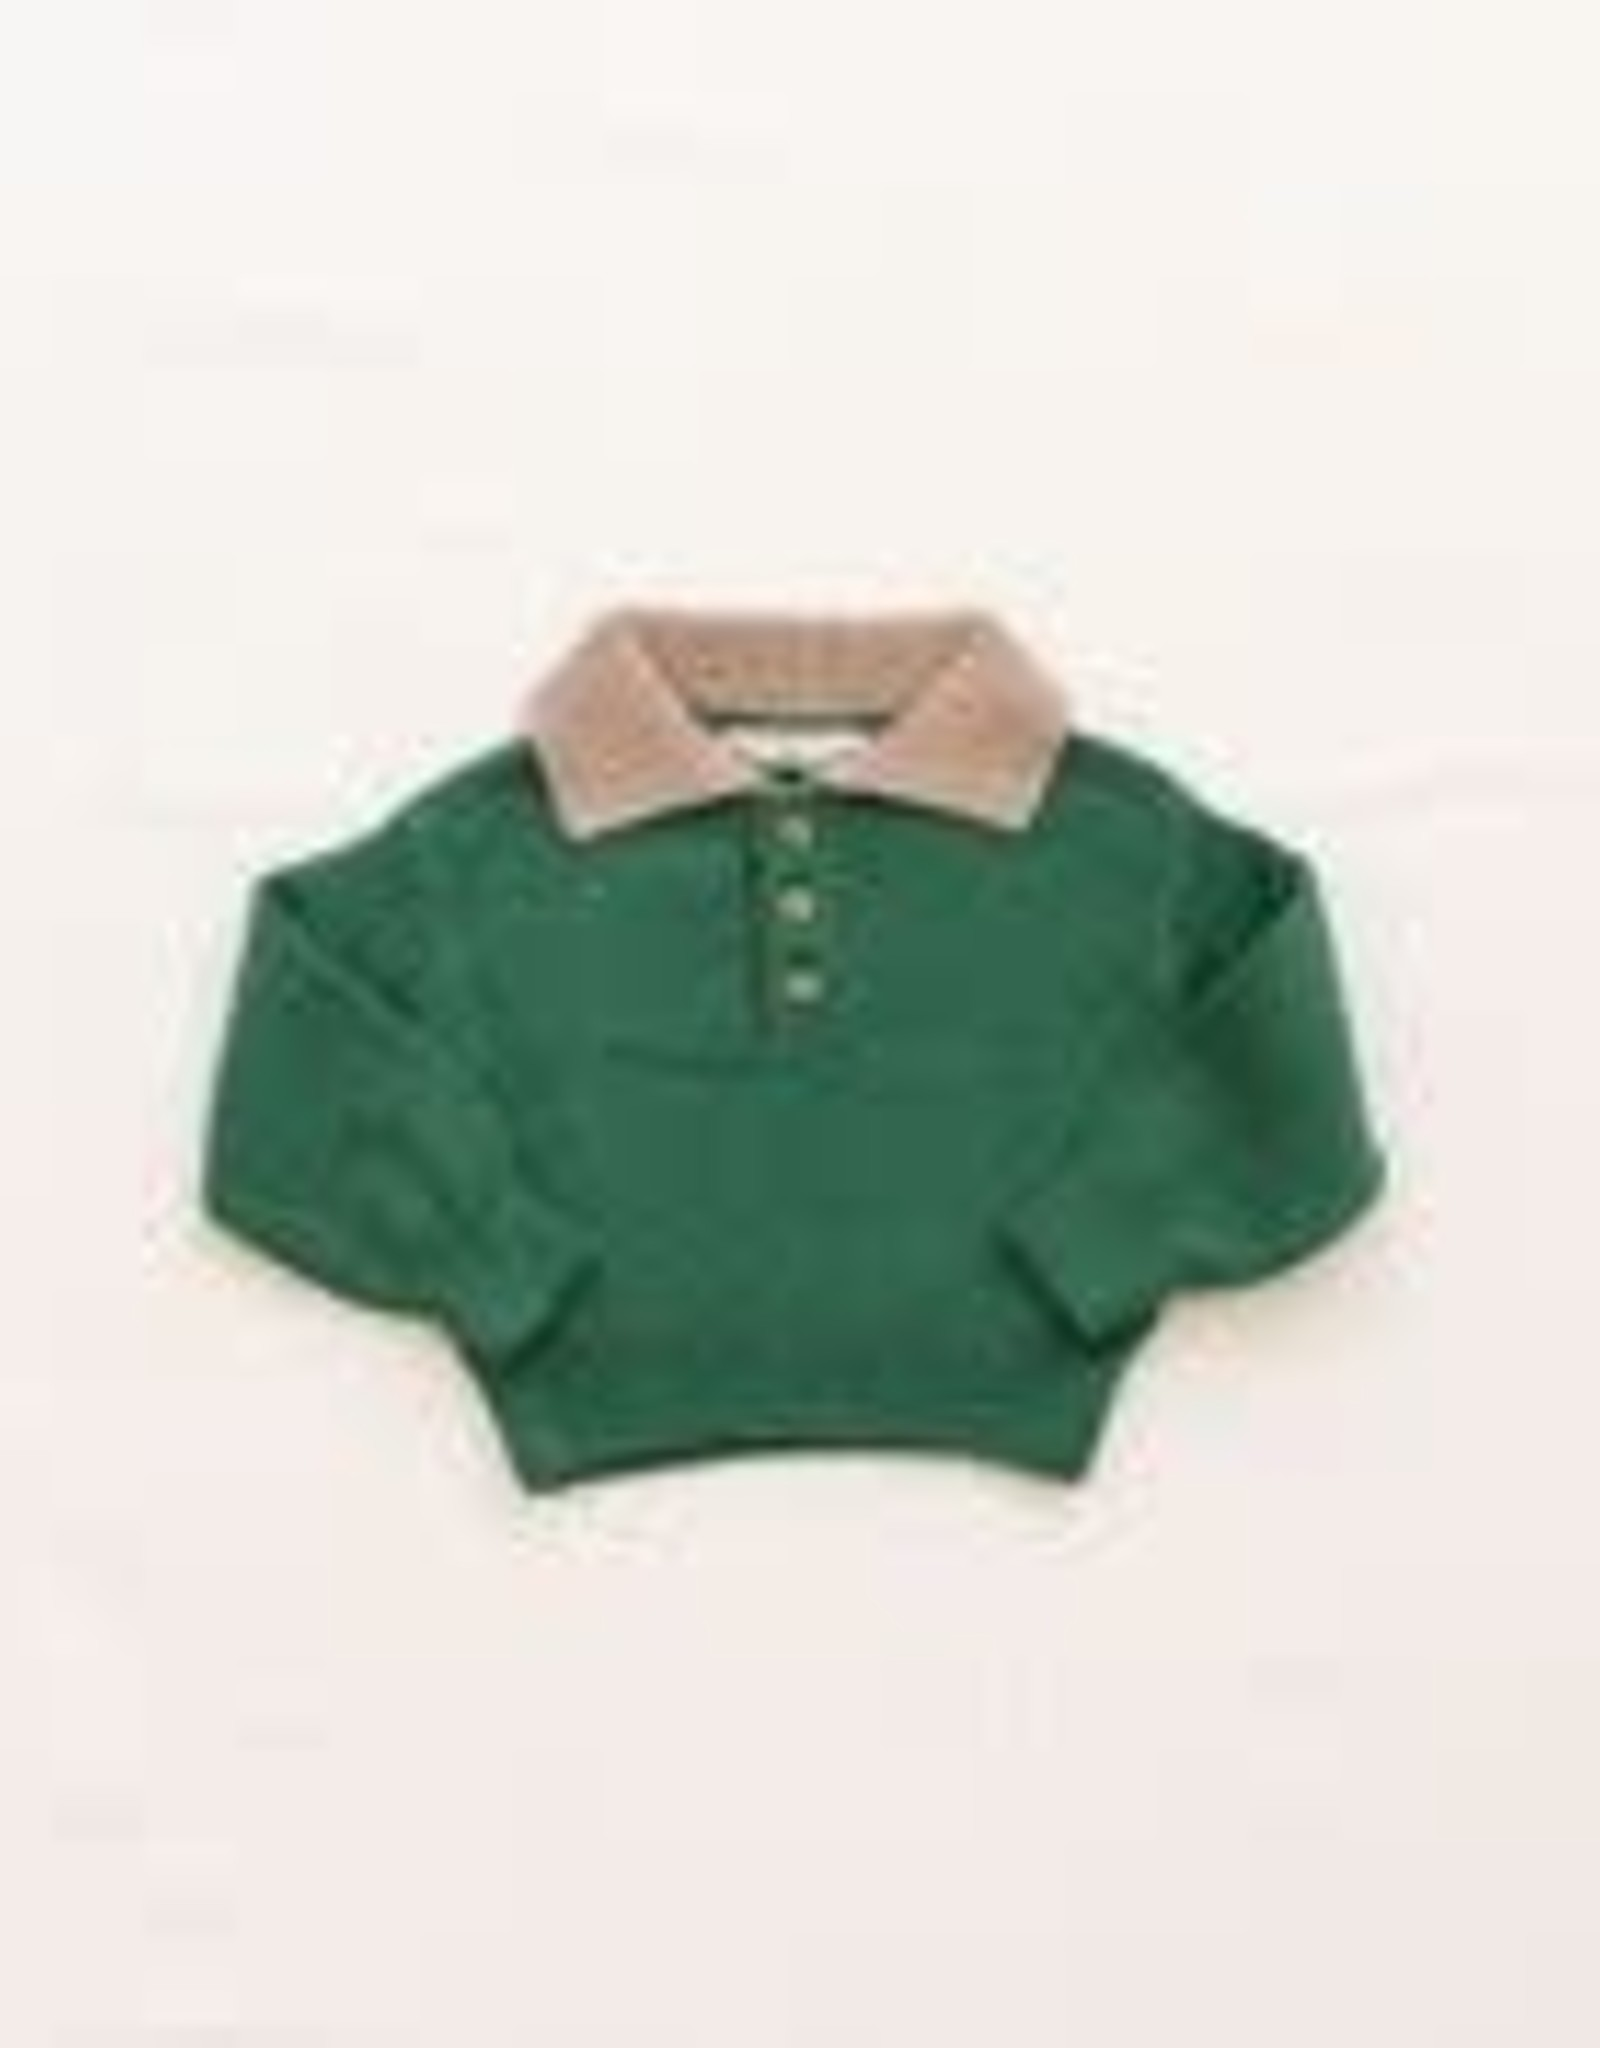 Fin & Vince Polo Sweater